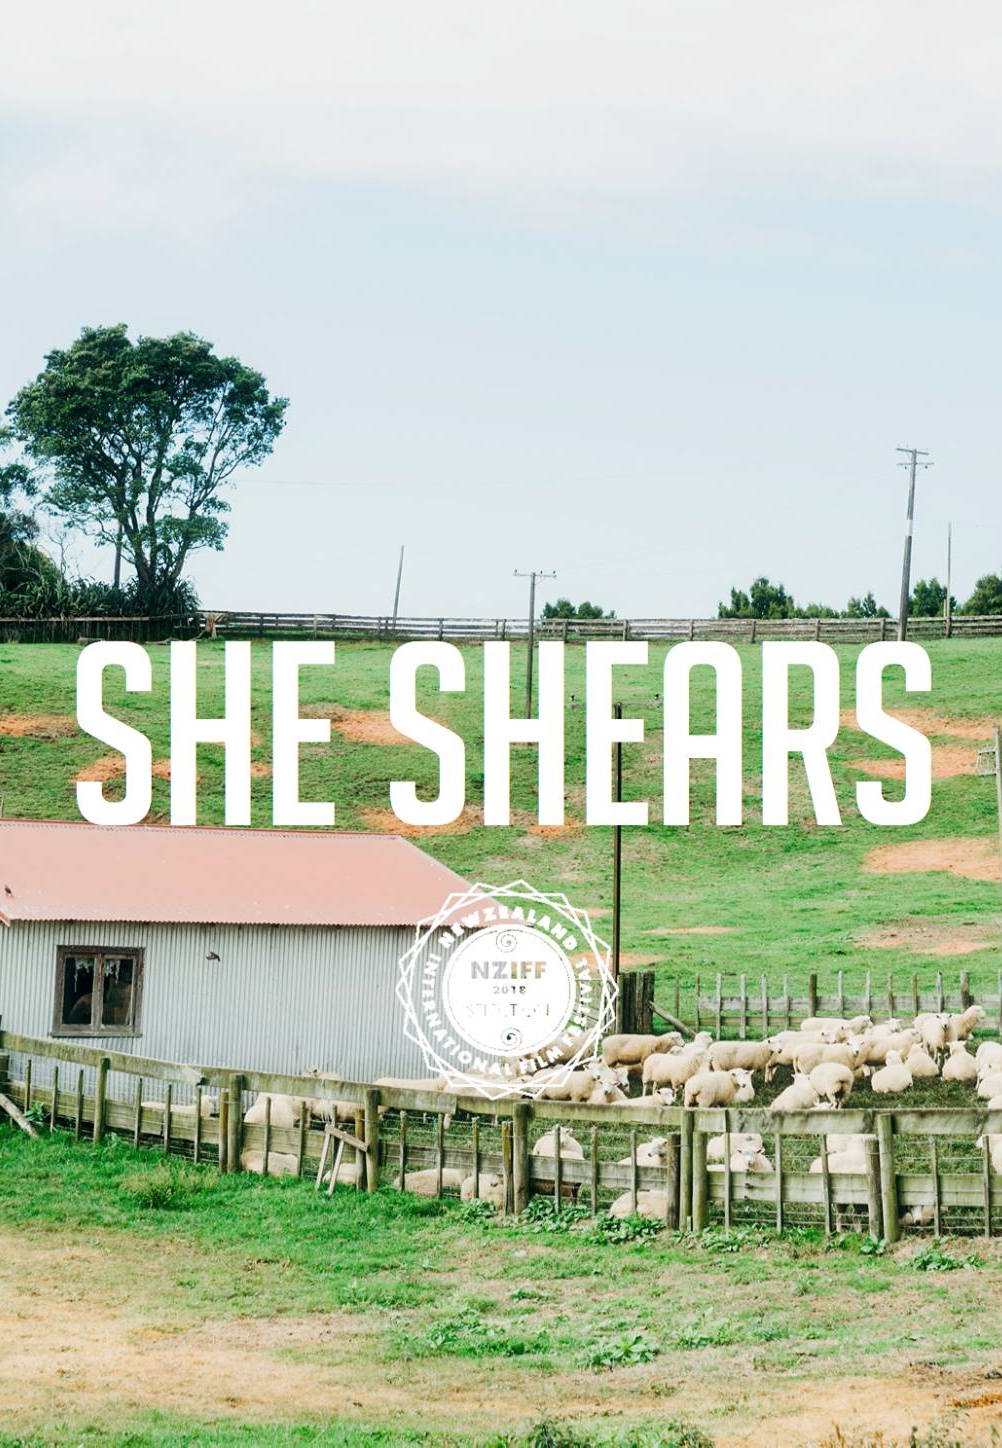 Poster of She Shears